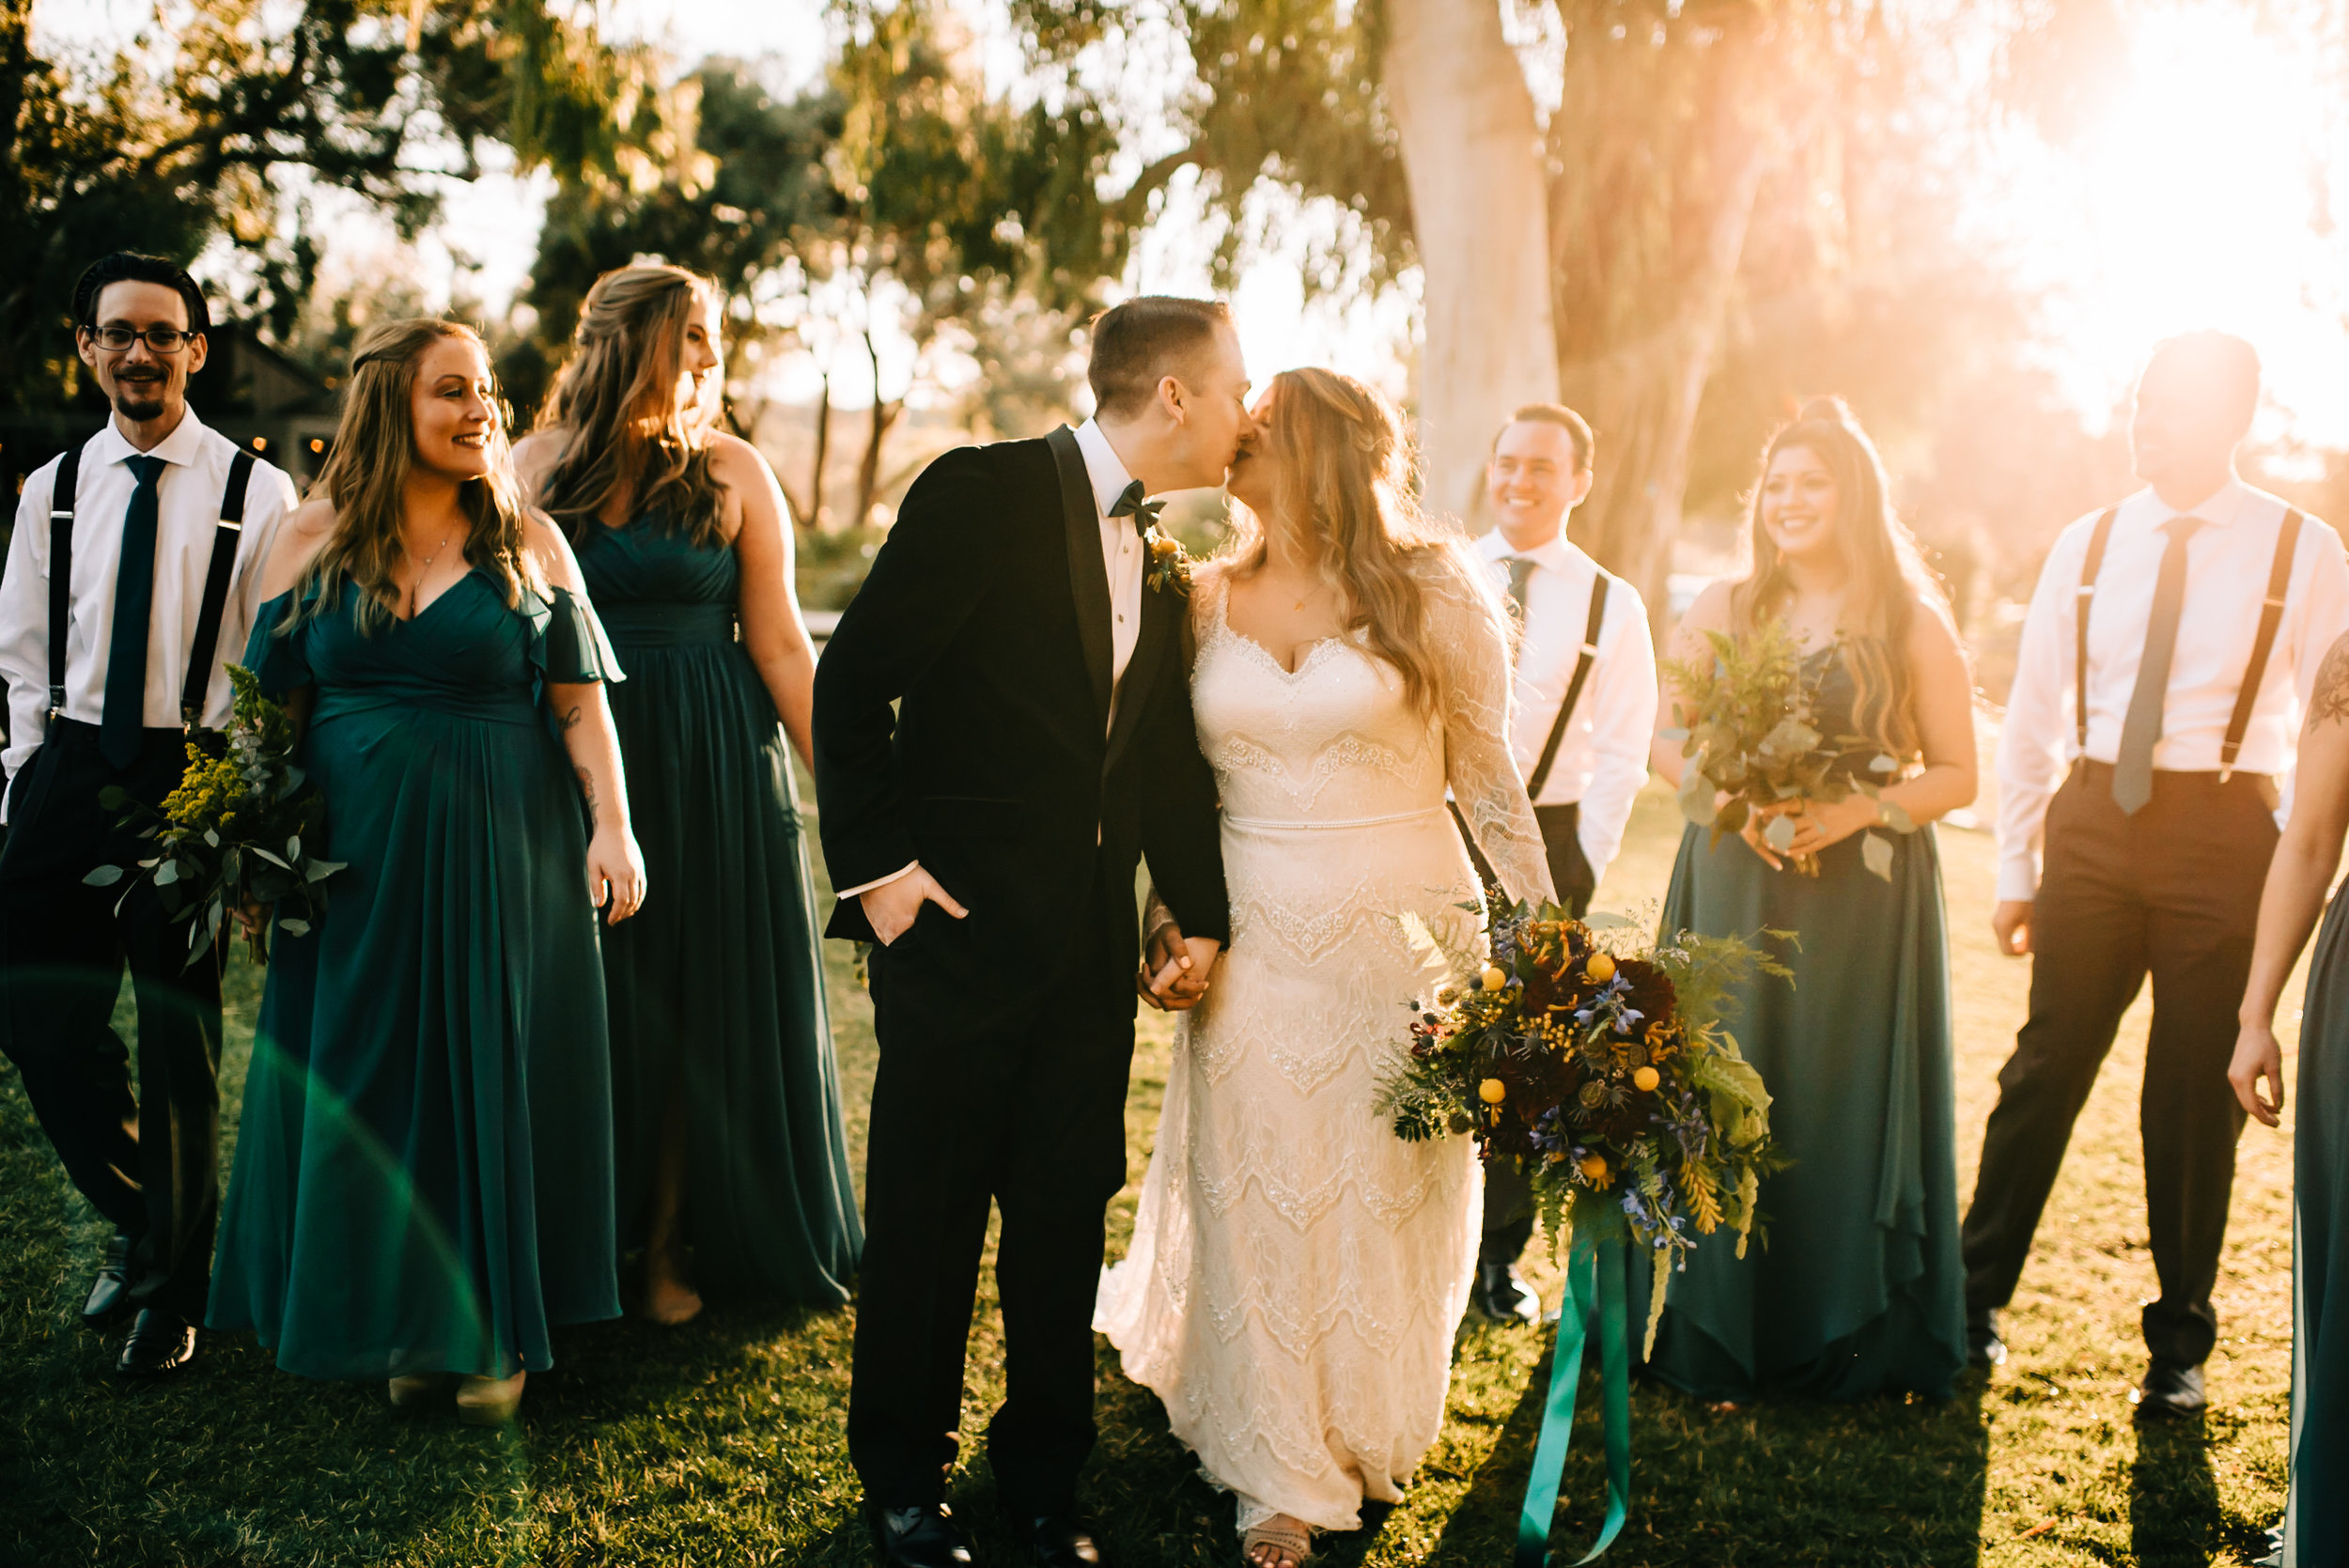 bay area nontraditional wedding photographer southern california boho wedding love light magic san francisco oakland northern california-746.jpg